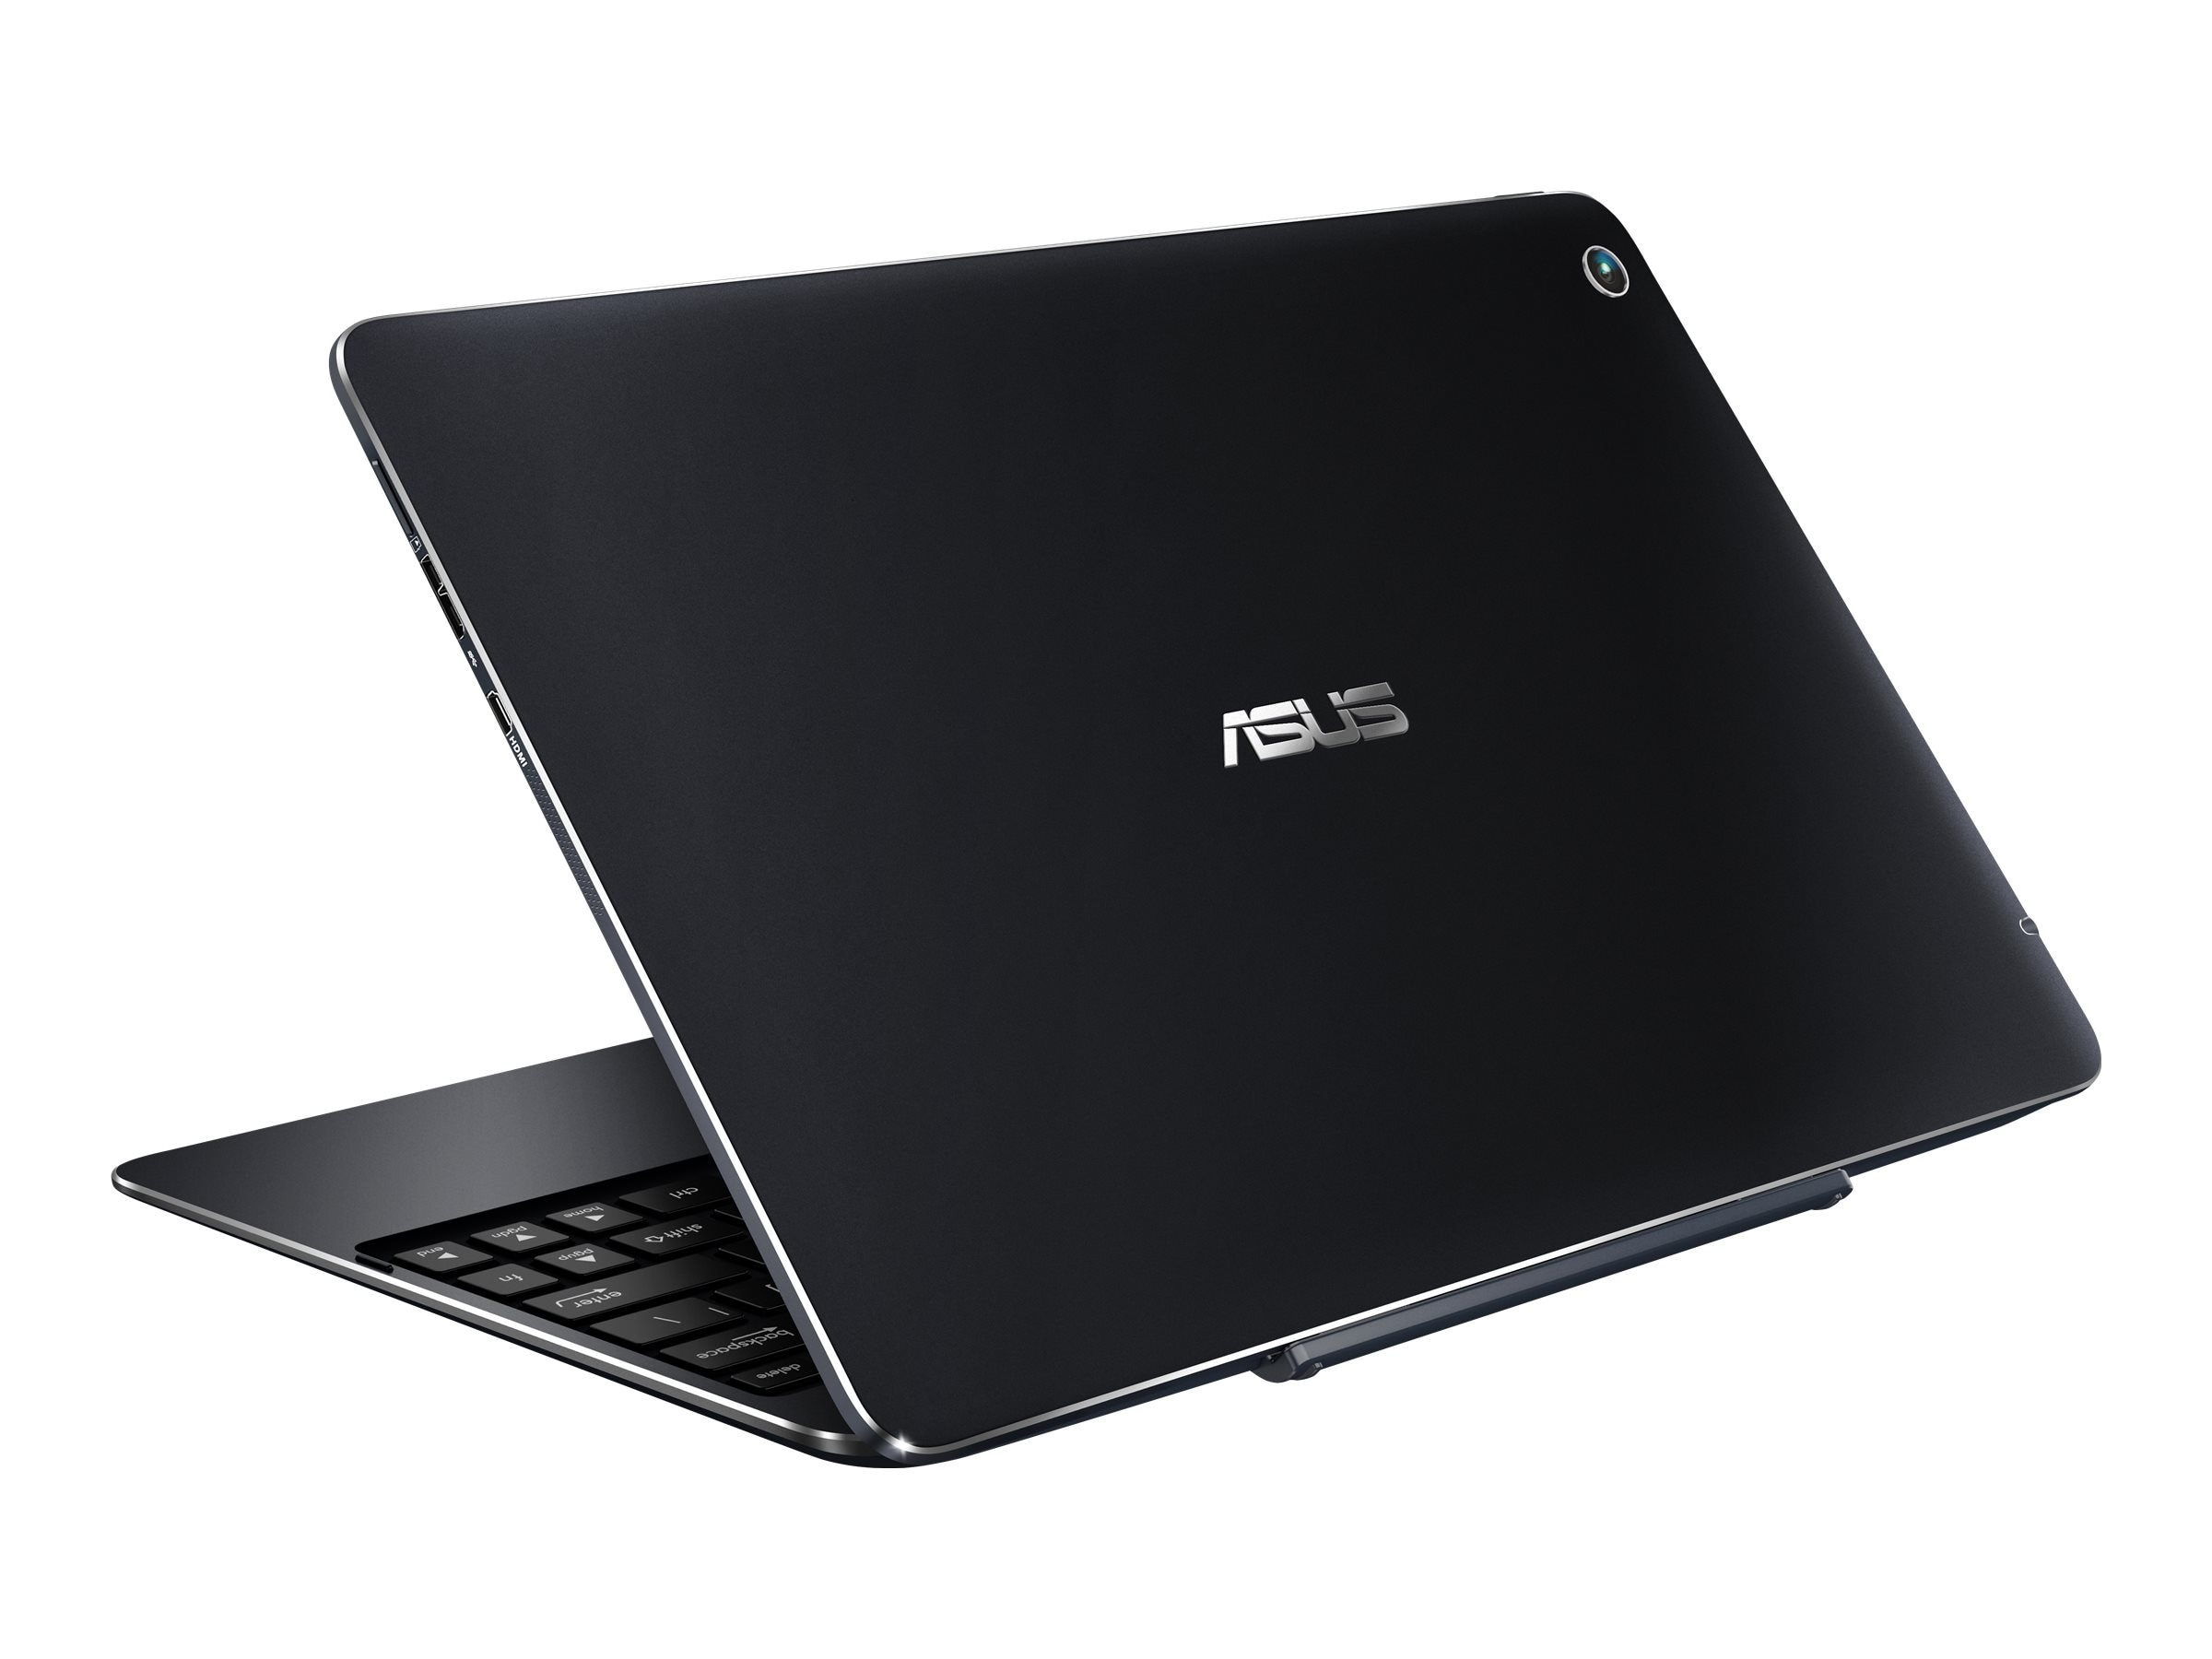 Asus T100CHIC1BKWX Image 6